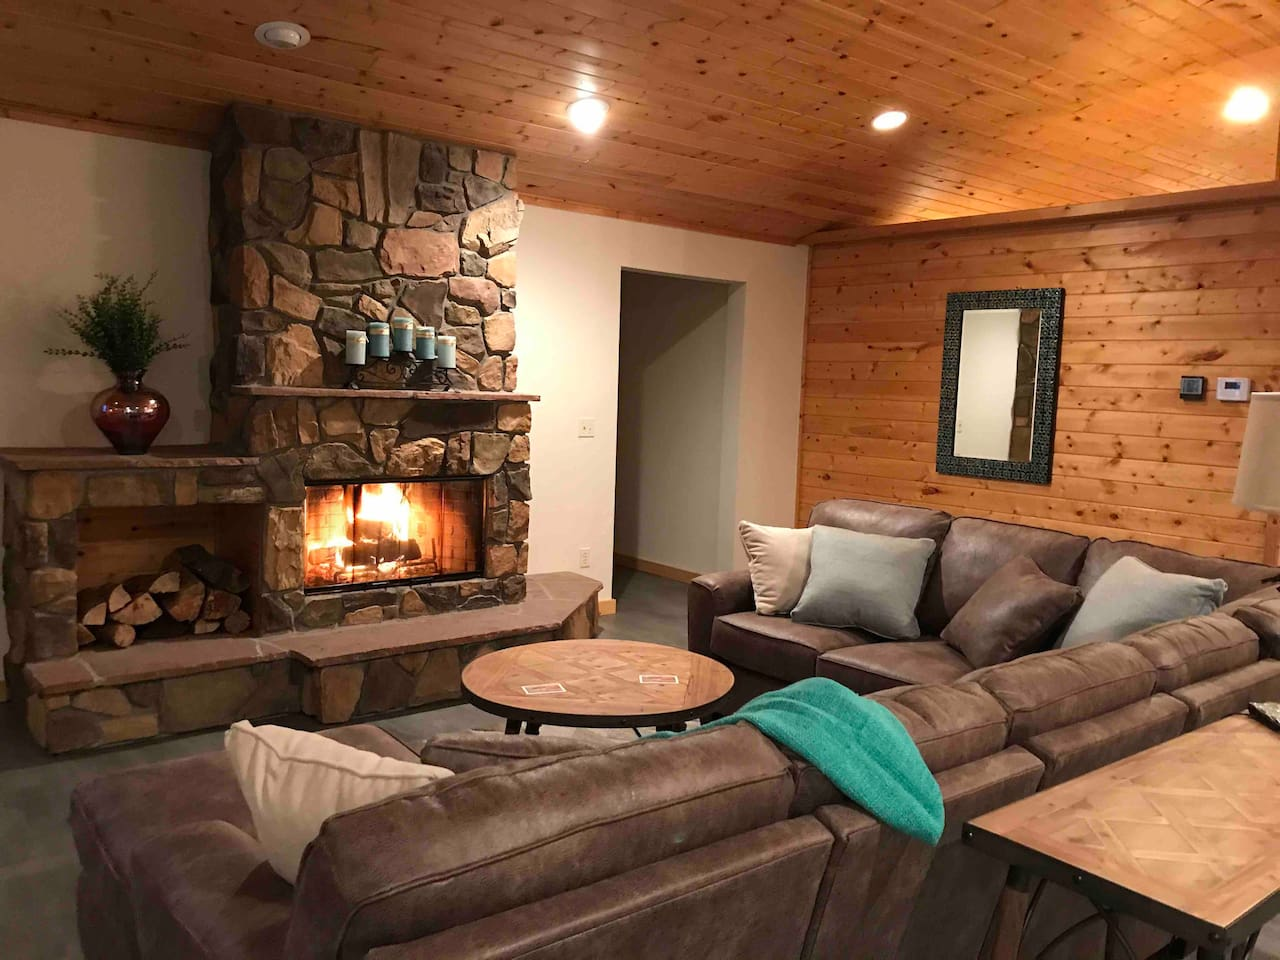 Fireplace with wood to burn and homemade fire starters.